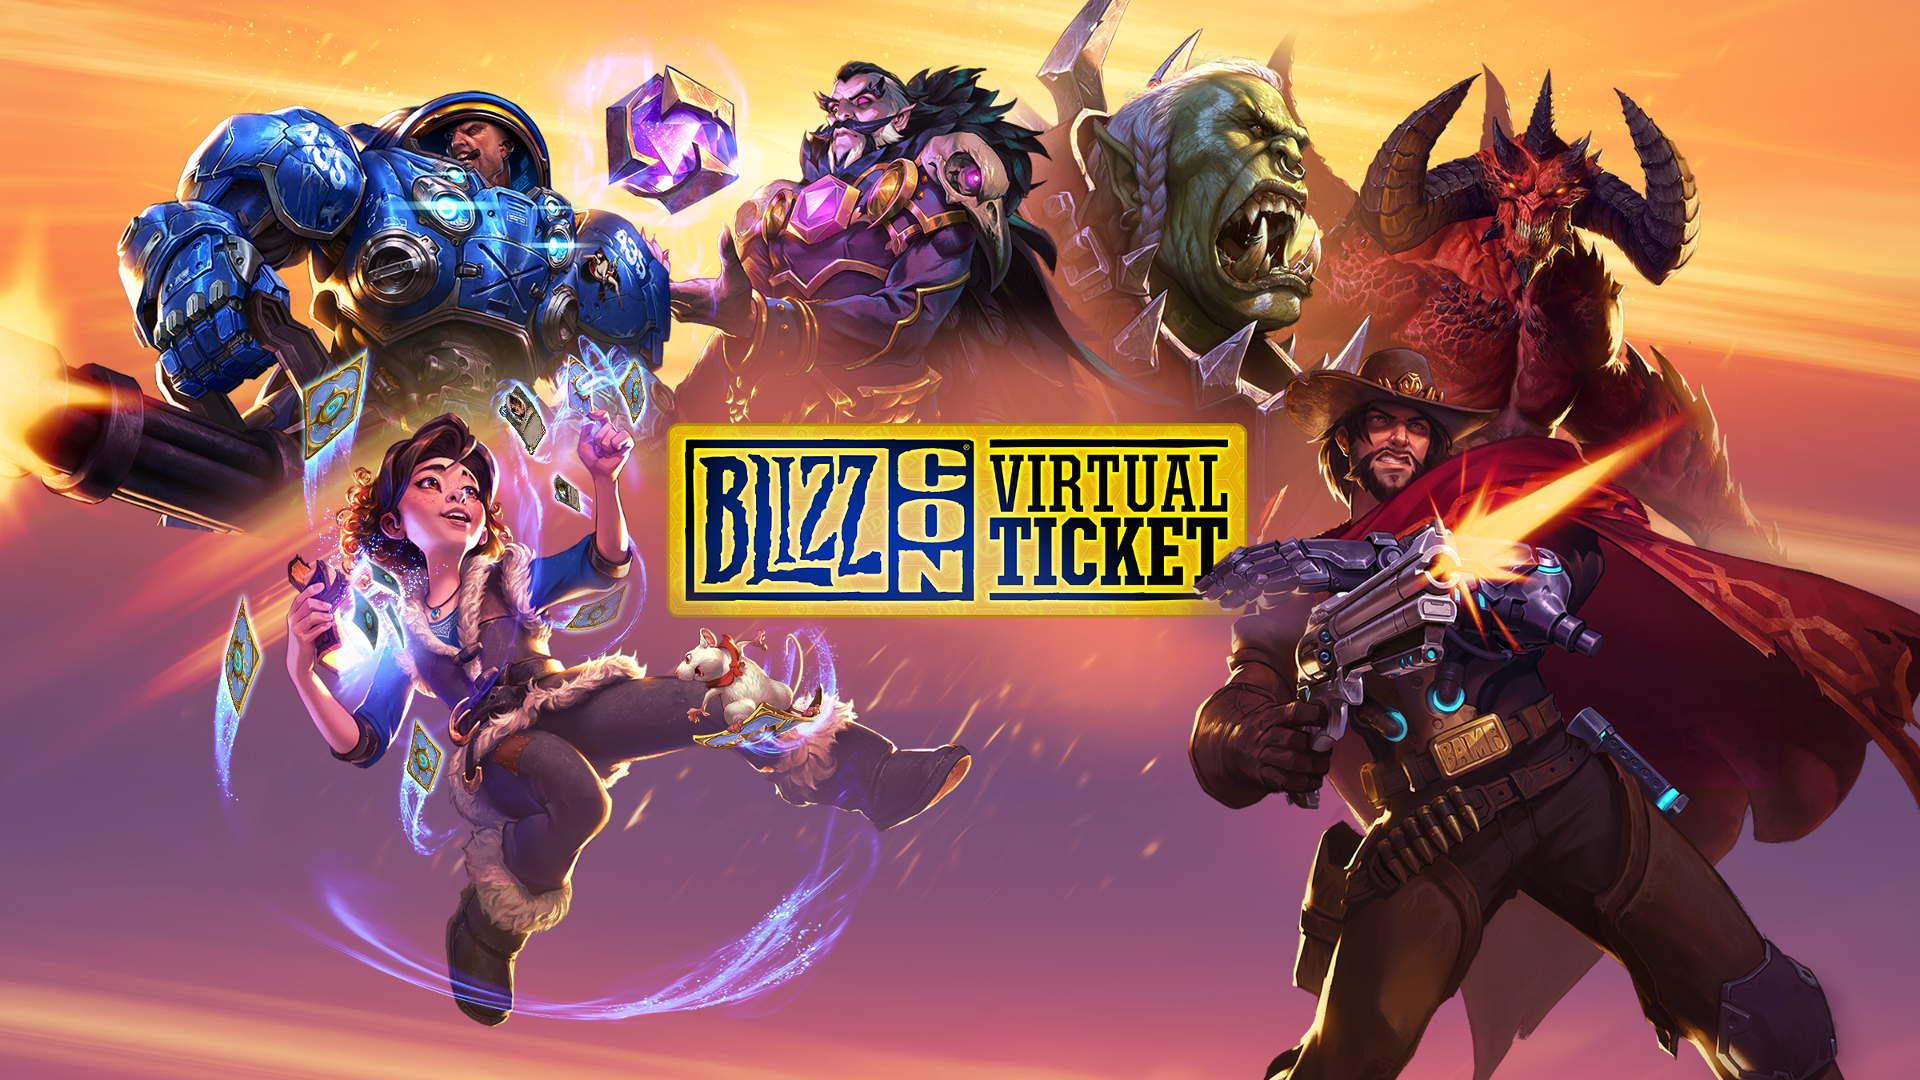 BlizzCon virtual ticket will let you play World of Warcraft